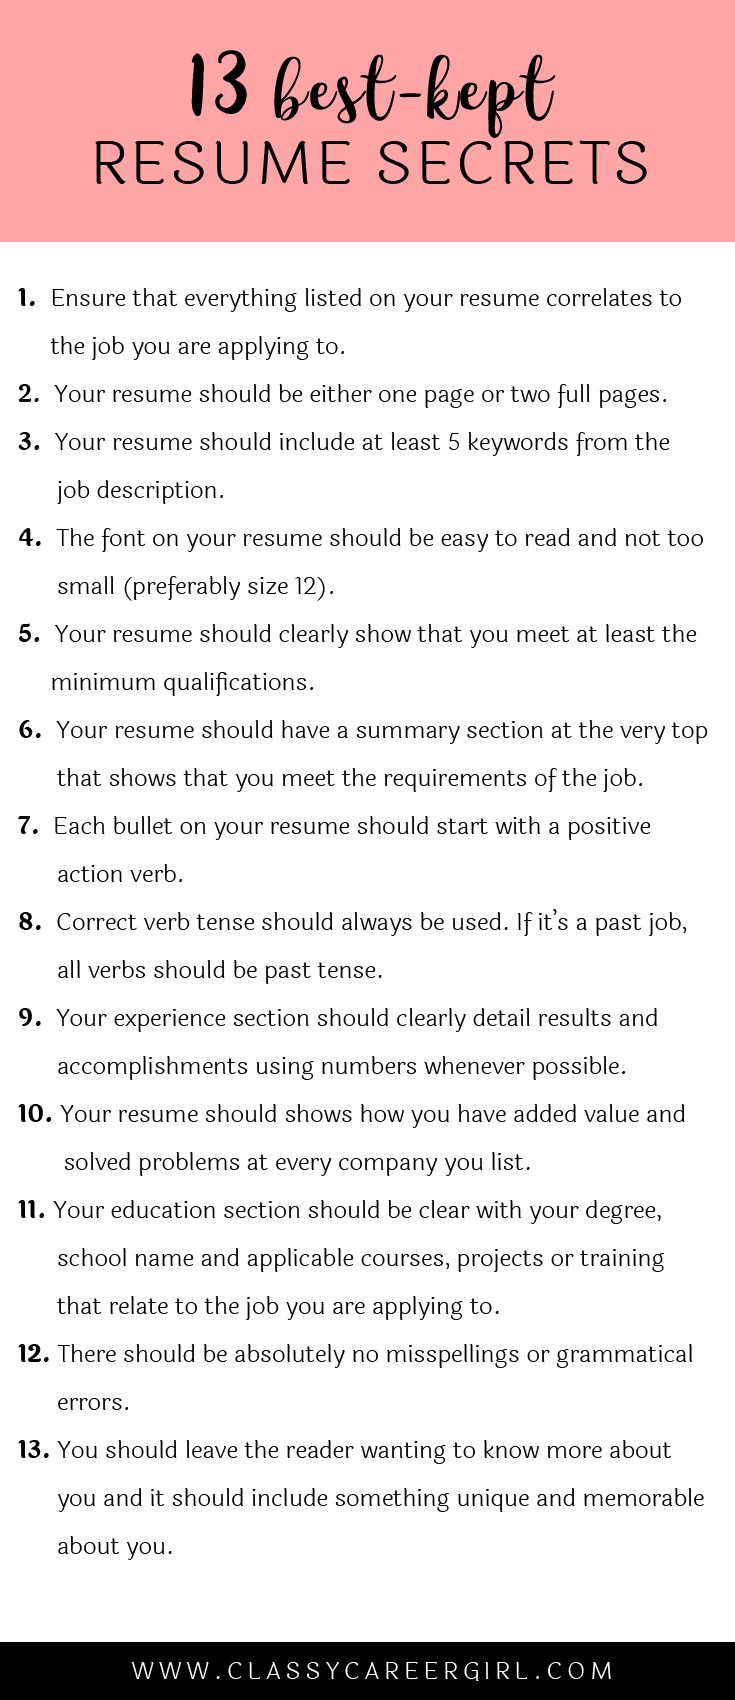 Opposenewapstandardsus  Winsome  Ideas About Resume On Pinterest  Cv Format Resume  With Likable Some Hiring Managers Will Toss Your Resume Out If You Dont Know These  With Astounding How To Make A Resume Free Also Artist Resume In Addition Lpn Resume And Resume Creator Free As Well As Student Resume Examples Additionally Build My Resume From Pinterestcom With Opposenewapstandardsus  Likable  Ideas About Resume On Pinterest  Cv Format Resume  With Astounding Some Hiring Managers Will Toss Your Resume Out If You Dont Know These  And Winsome How To Make A Resume Free Also Artist Resume In Addition Lpn Resume From Pinterestcom